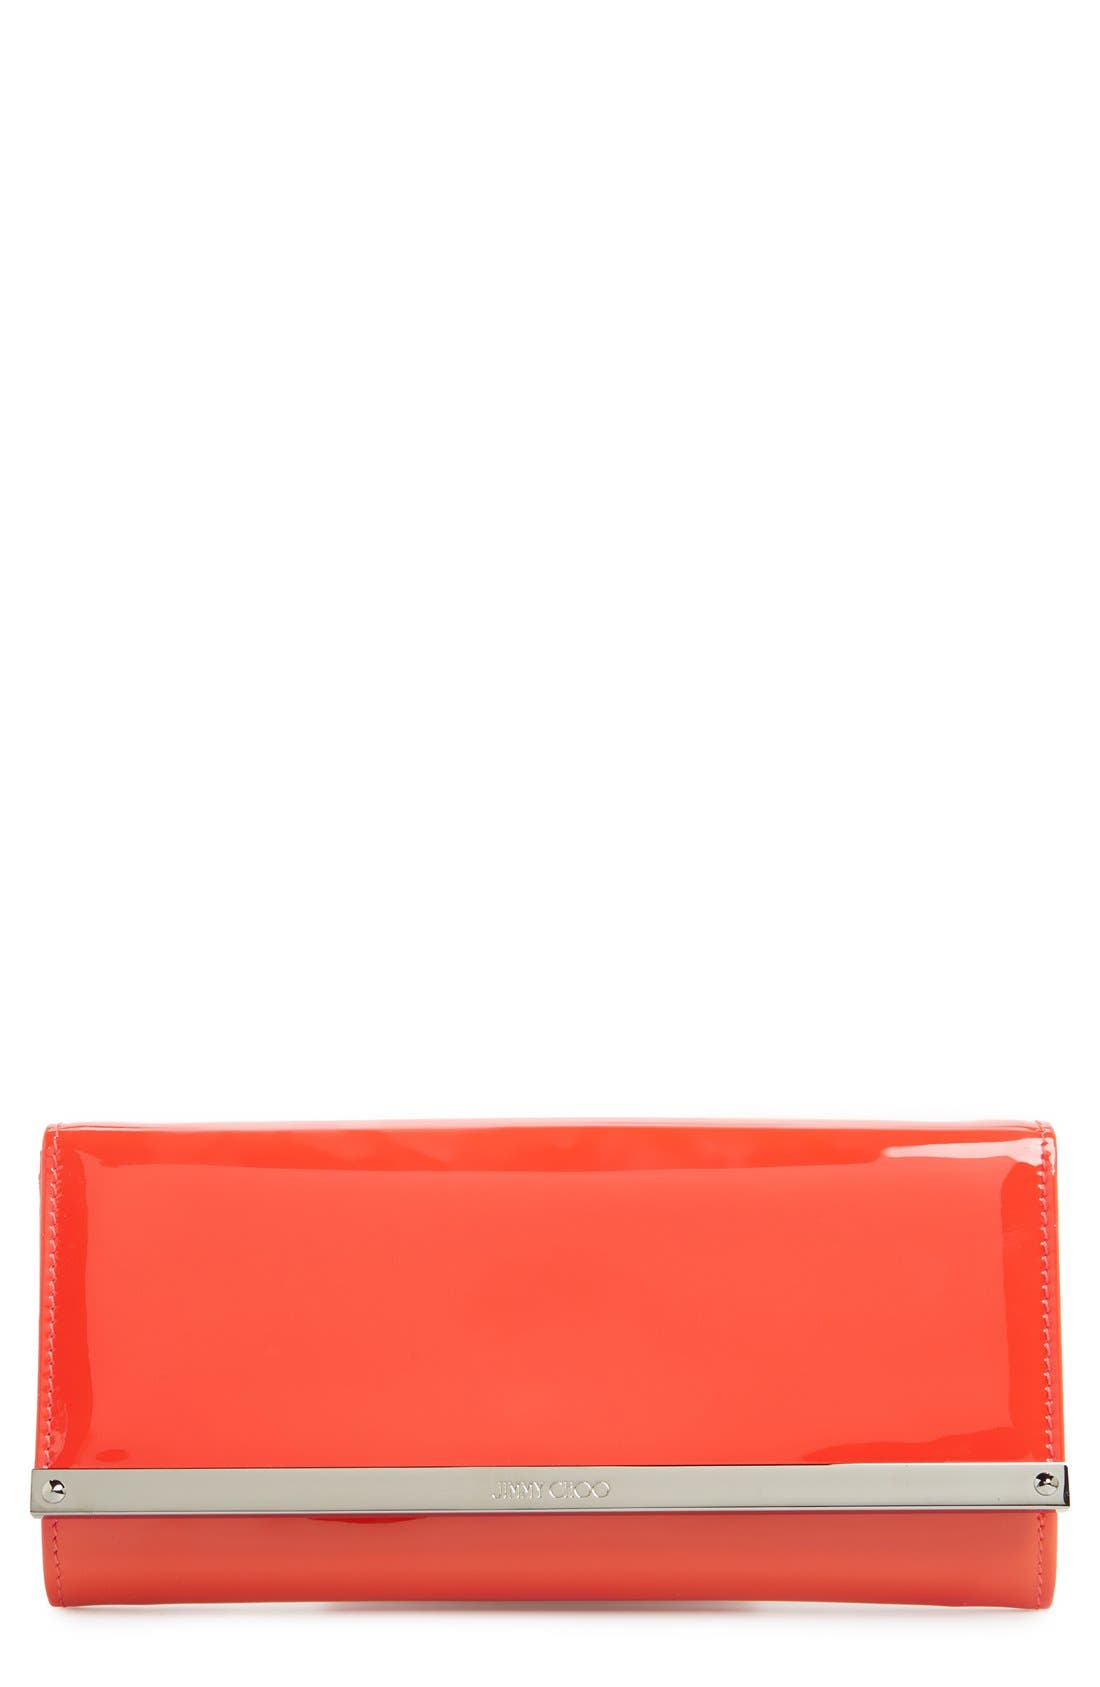 Jimmy Choo 'Milla' Patent Leather Wallet on a Chain